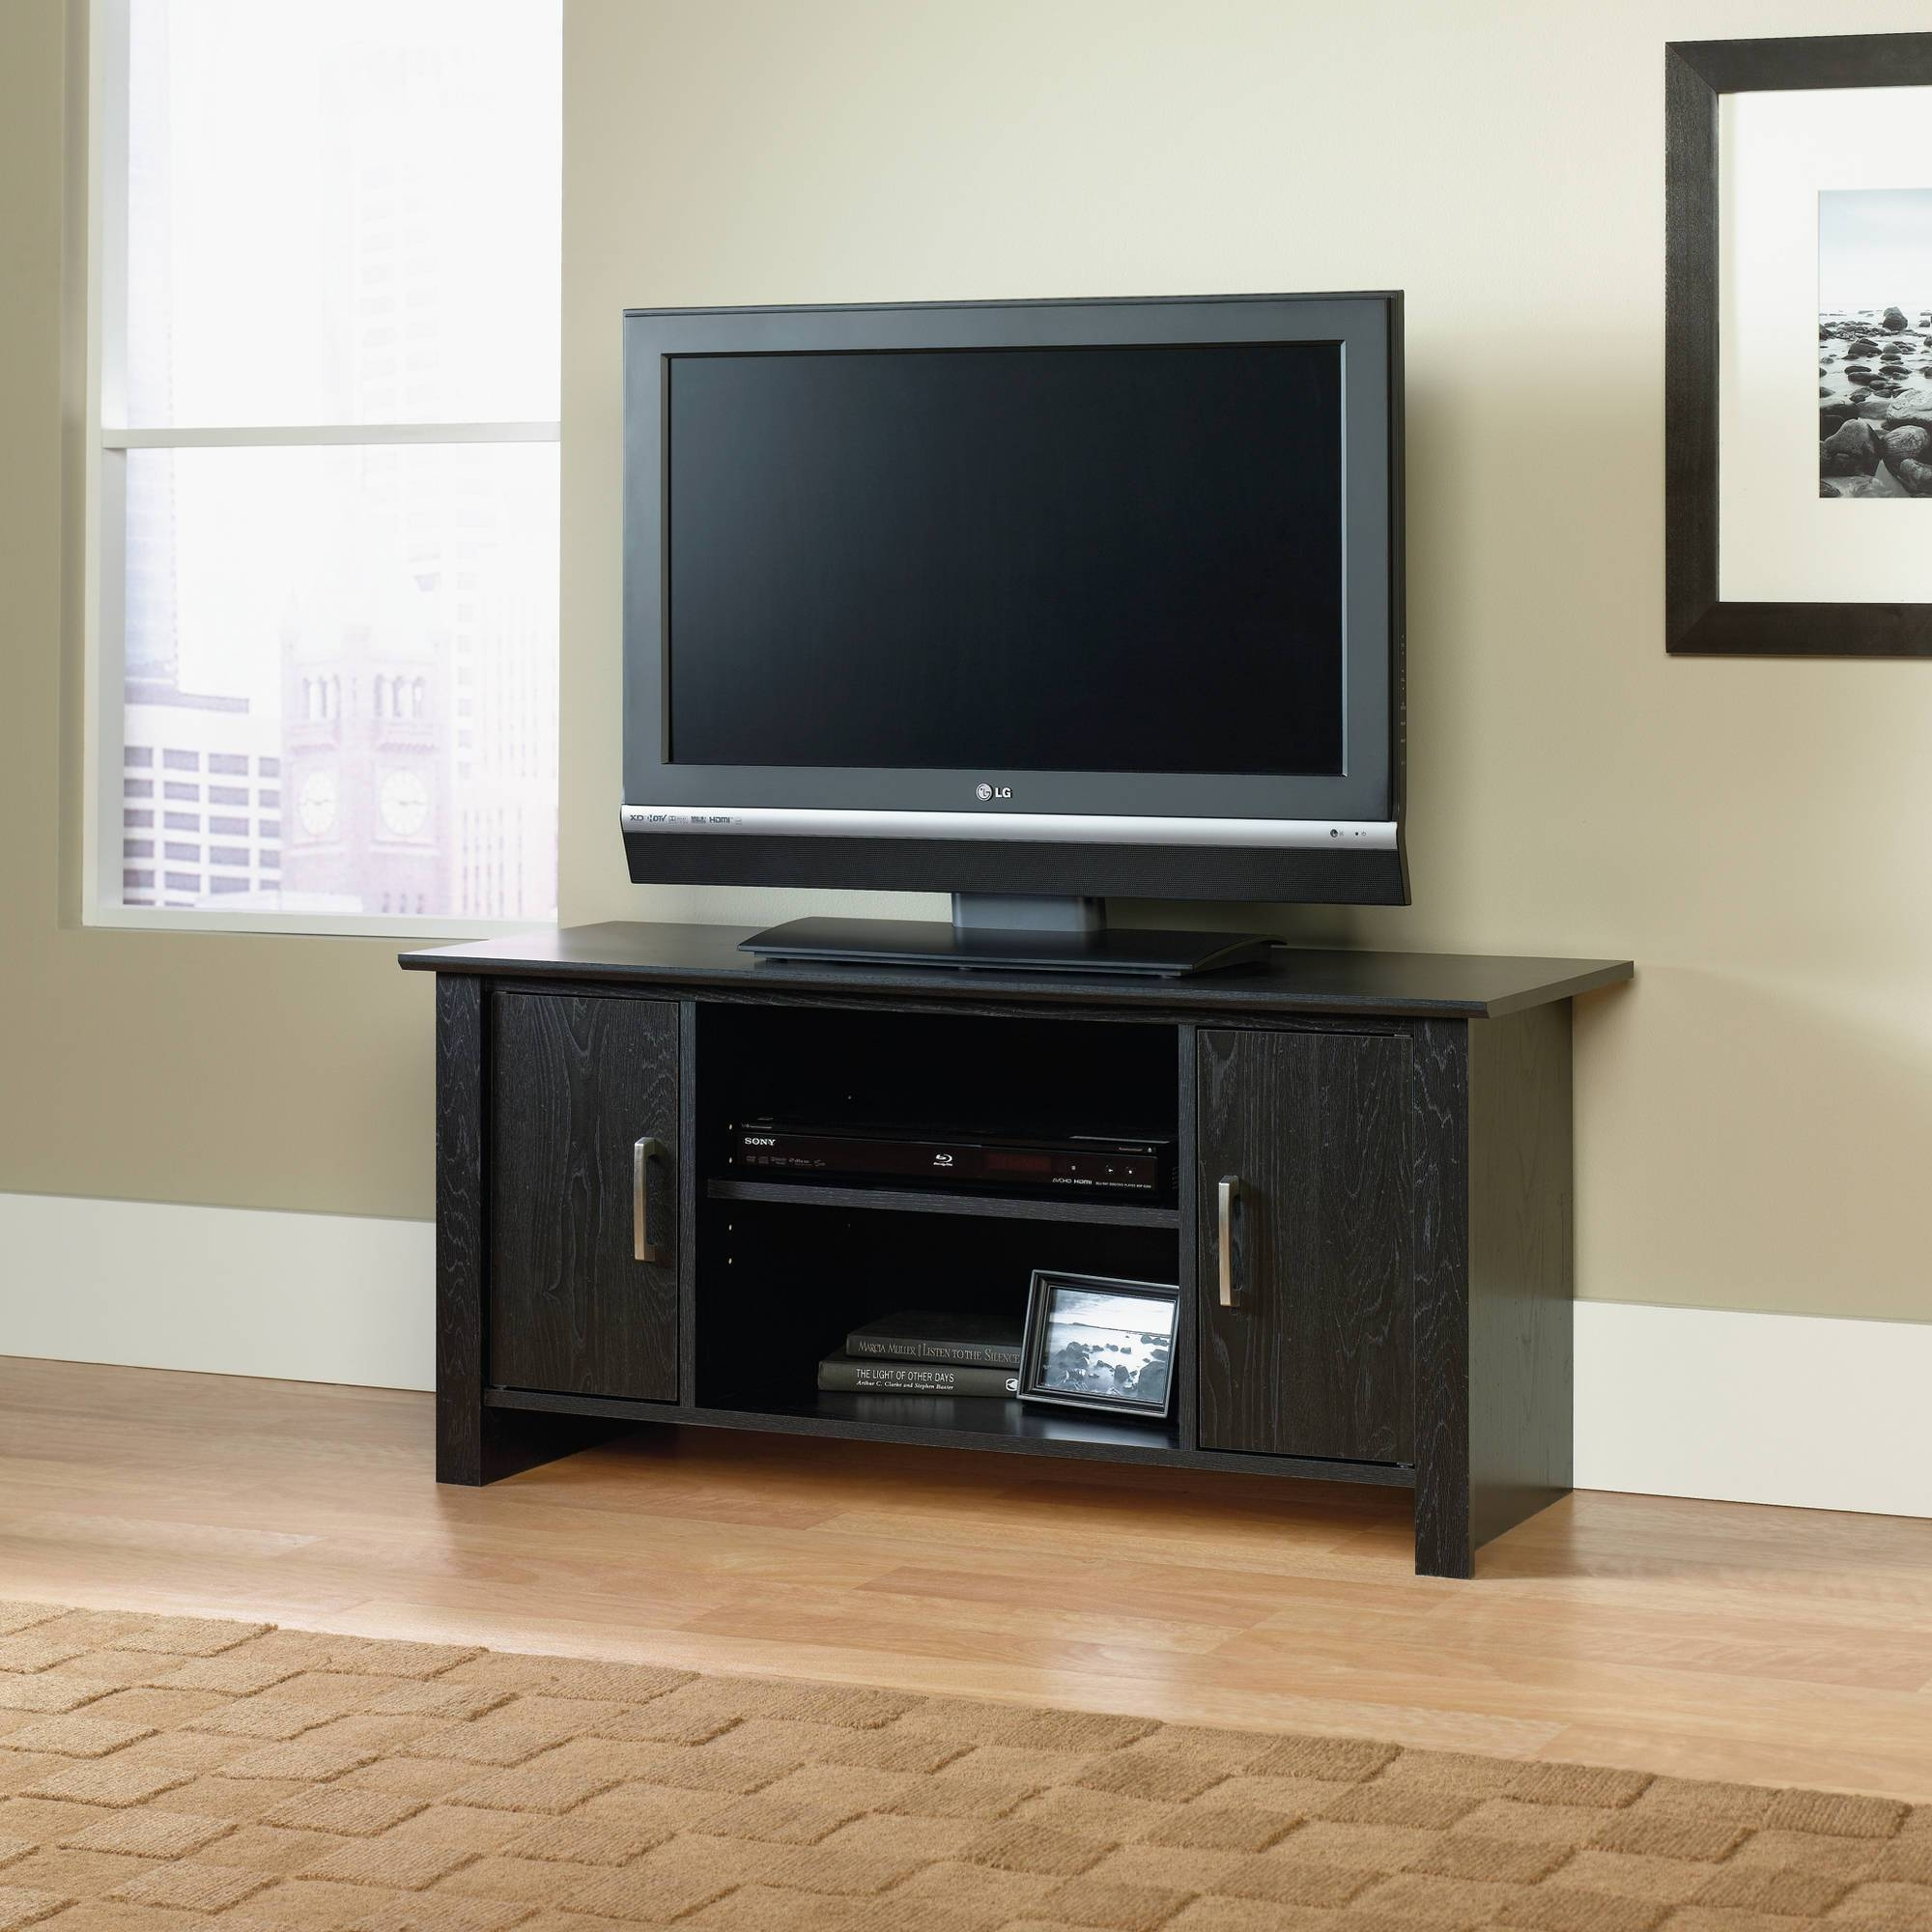 Corner Tv Stands - Walmart in Corner Tv Stands for 60 Inch Flat Screens (Image 5 of 15)